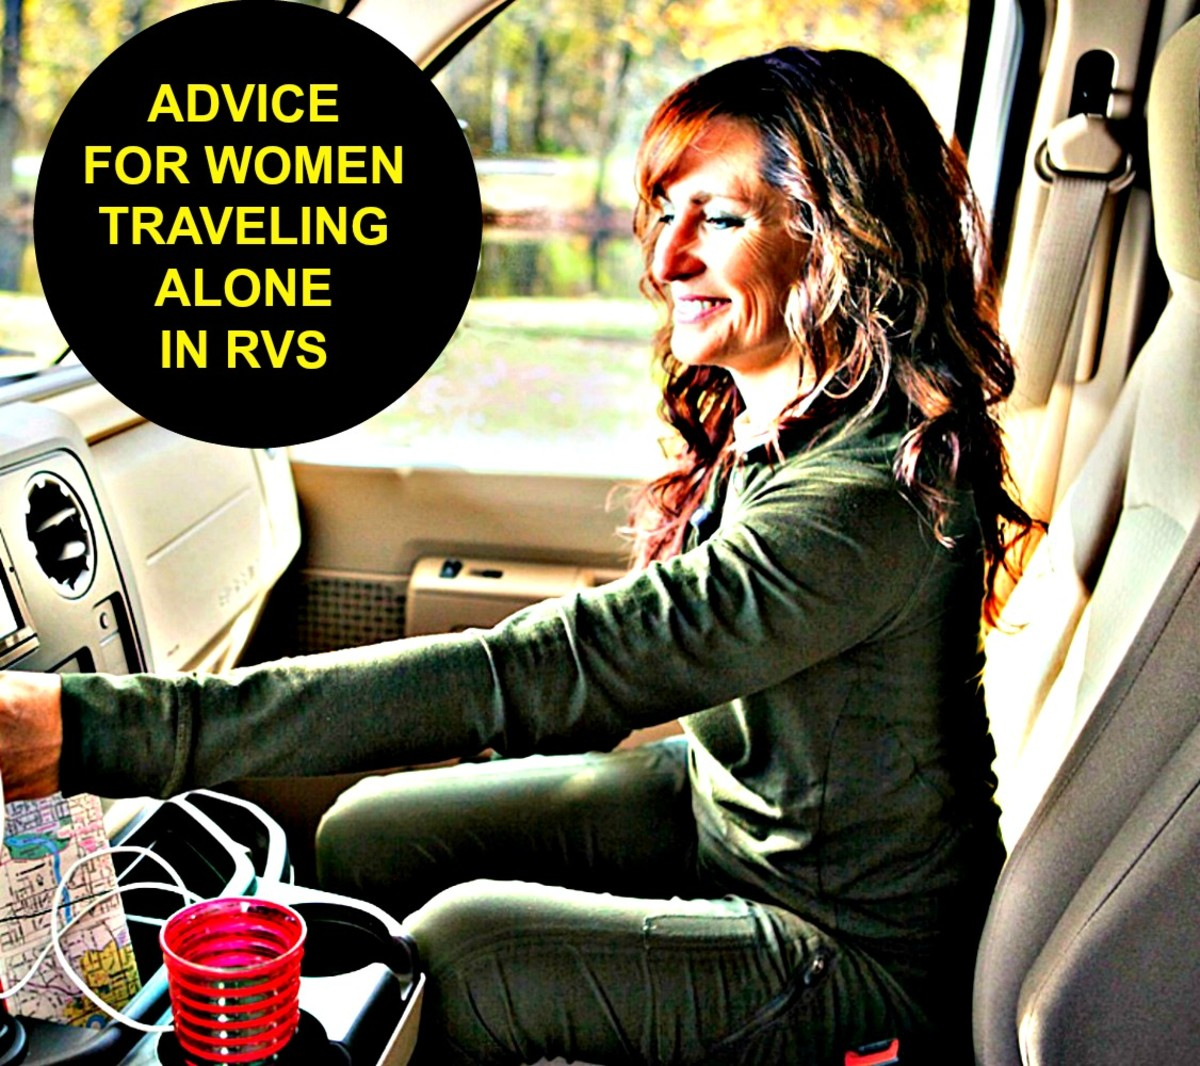 Tips and Advice for women who choose to travel alone in recreational vehicles.